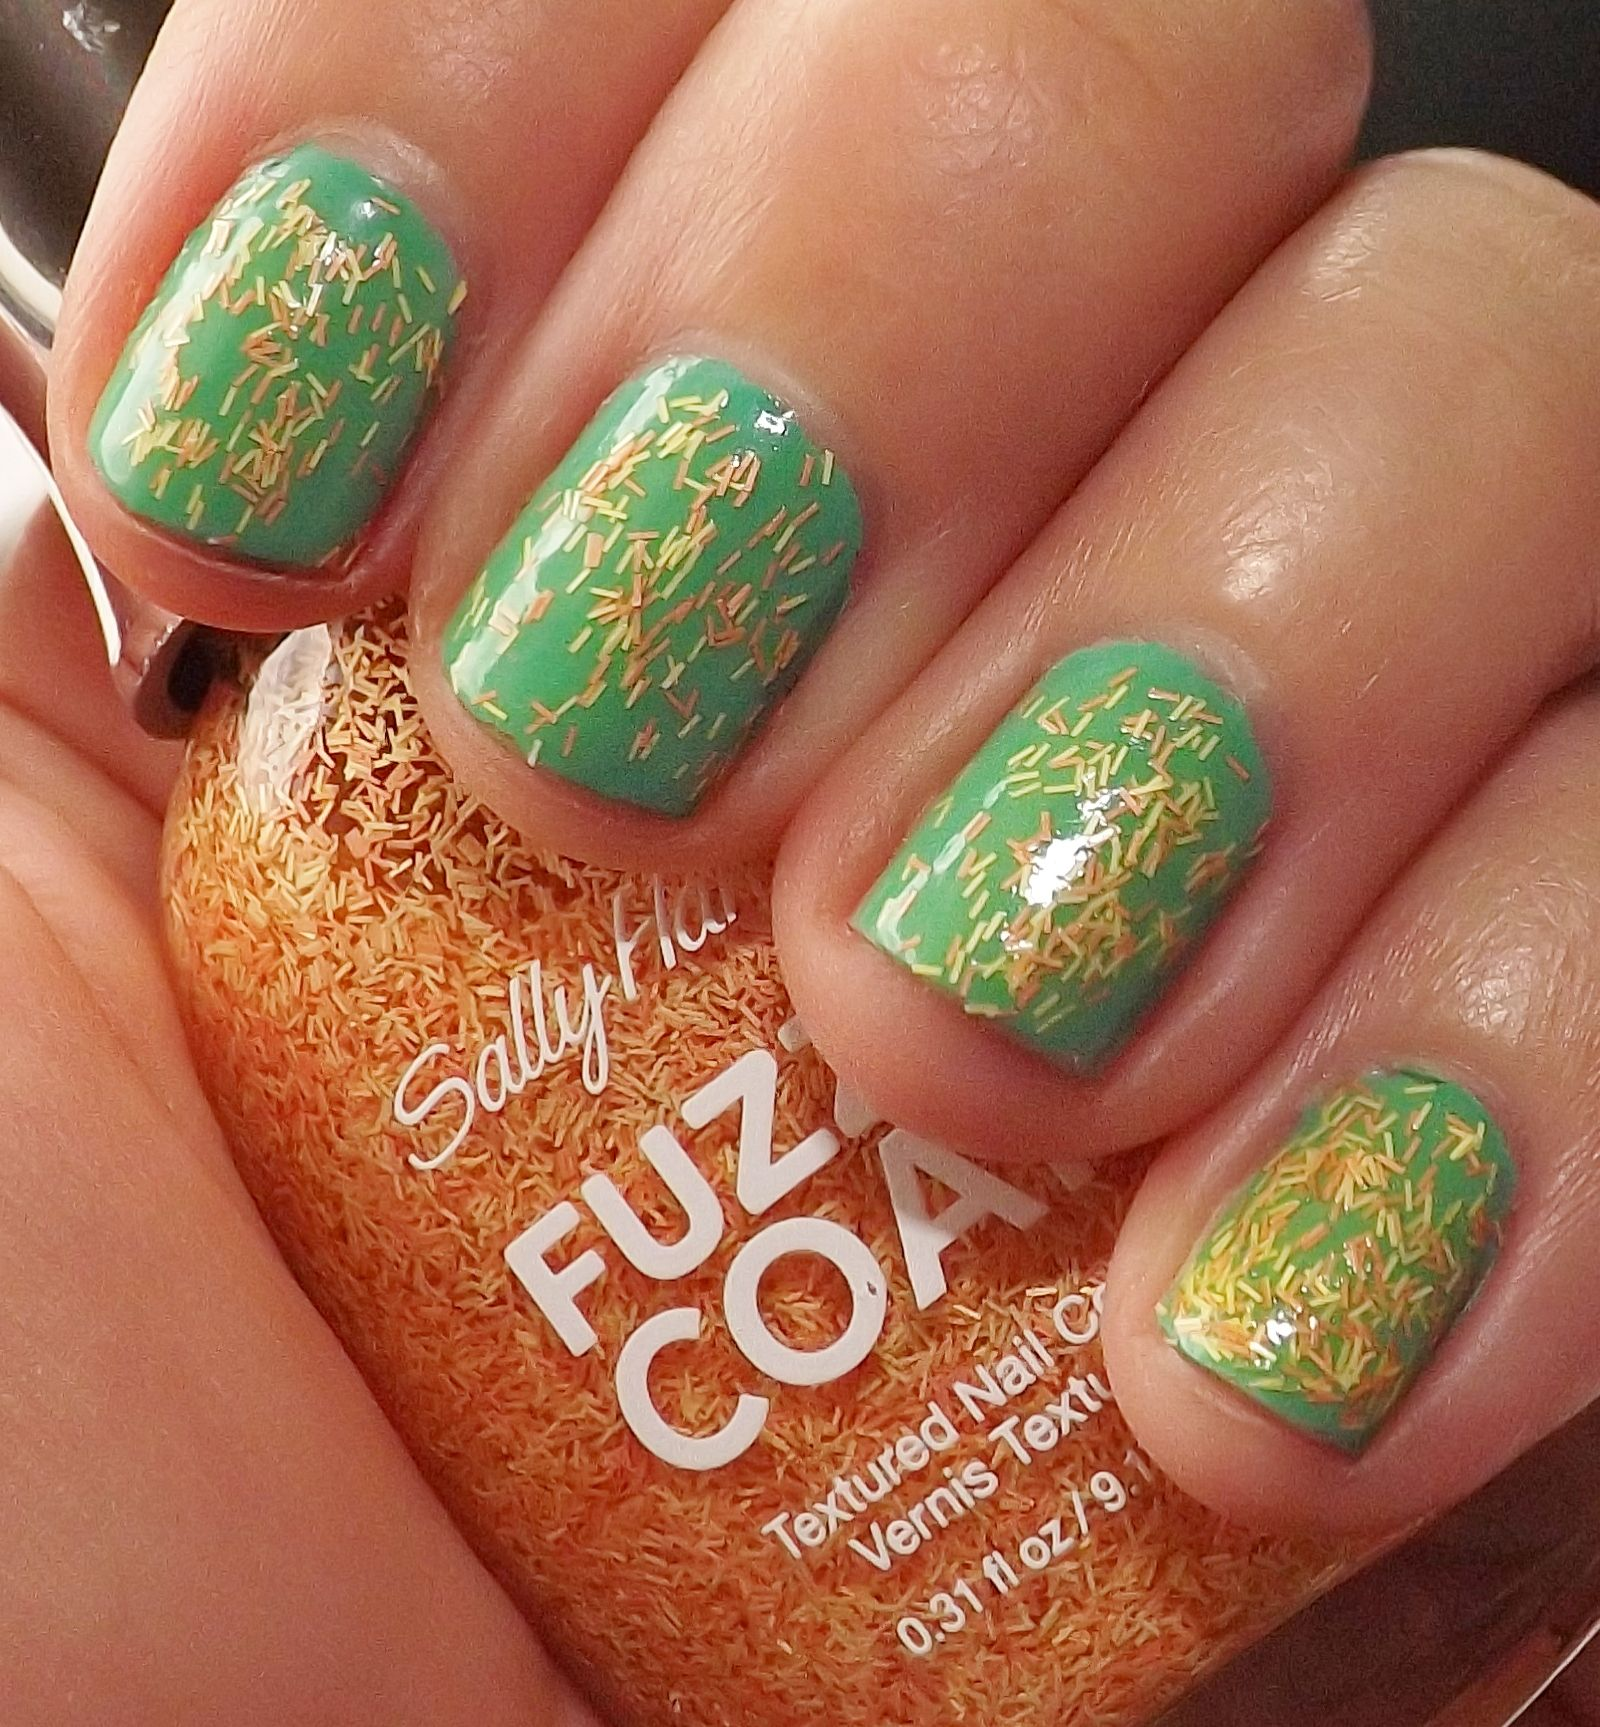 Sally Hansen Fuzzy Coat in Peach Fuzz Review | NaeSays | Pinterest ...